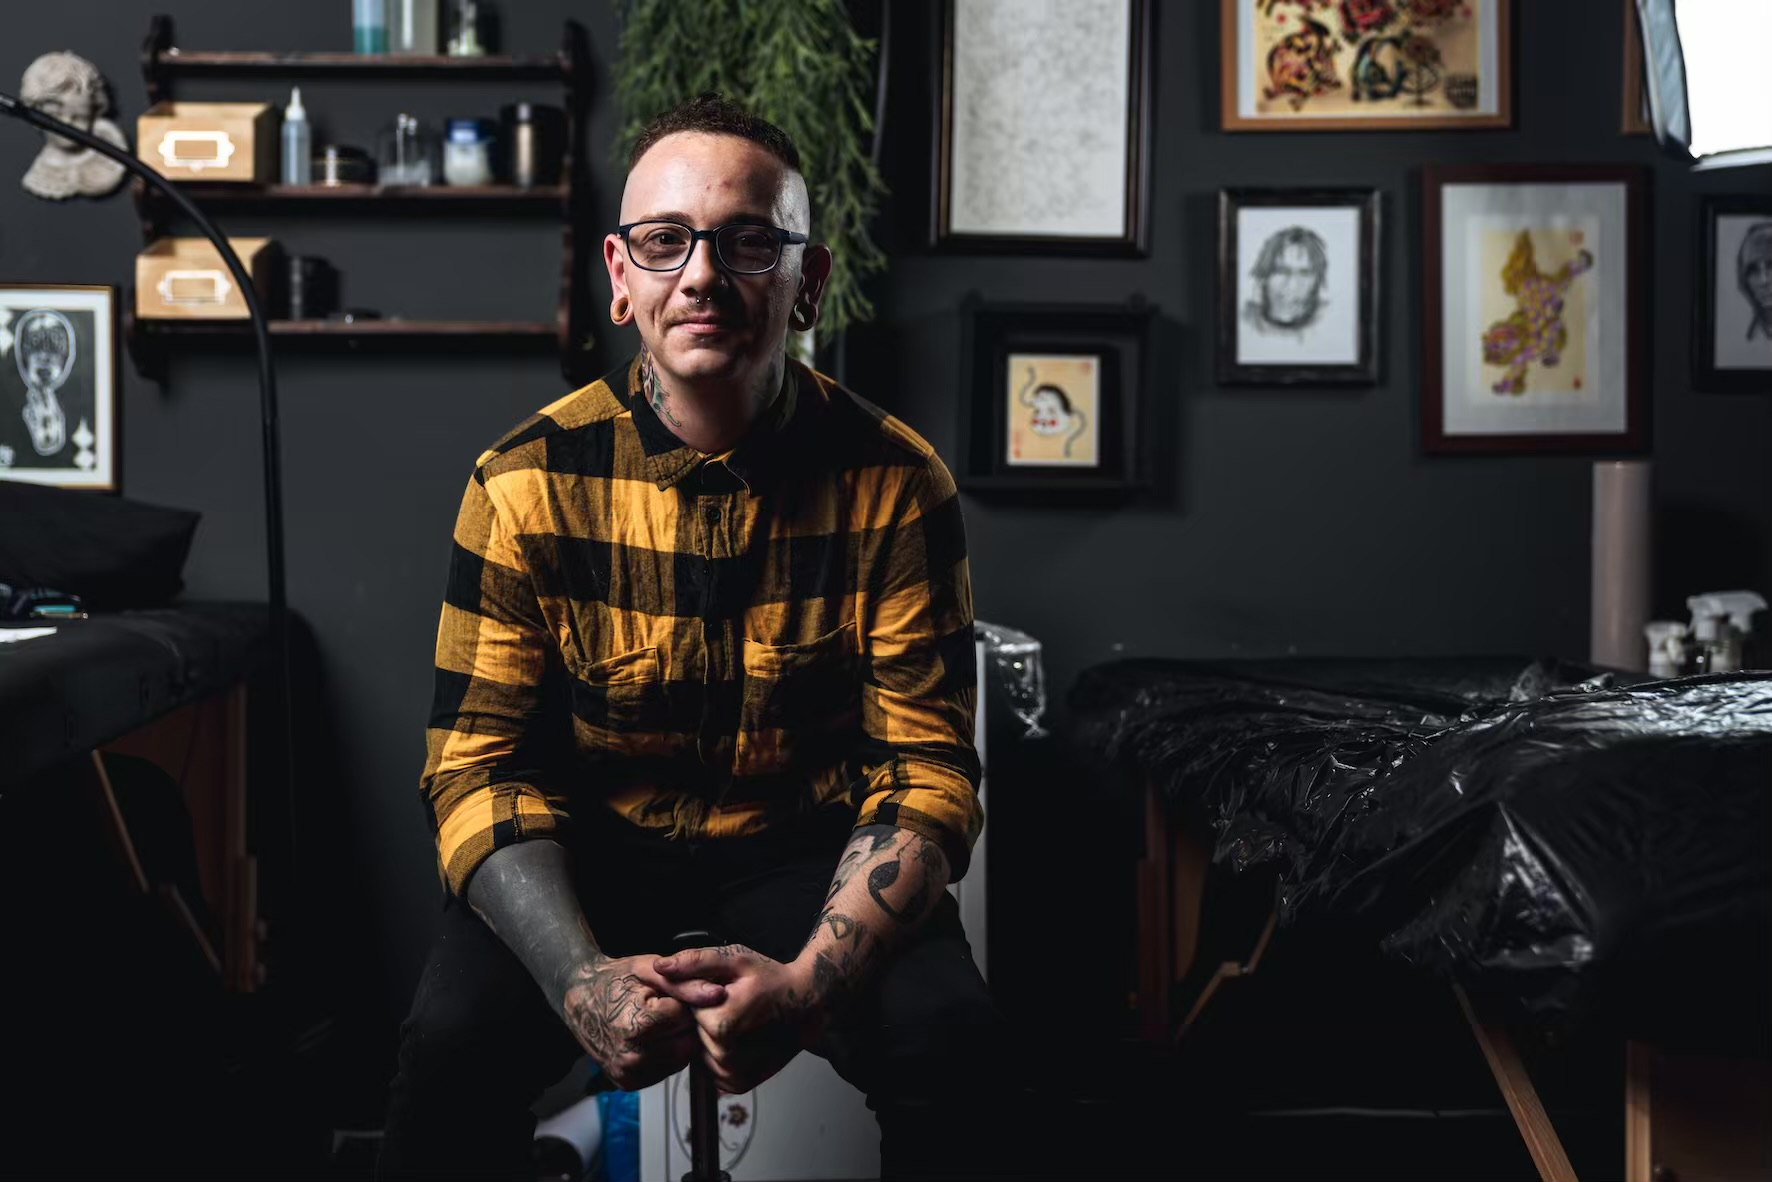 Meet Peter Savage as our featured Tattoo Artist